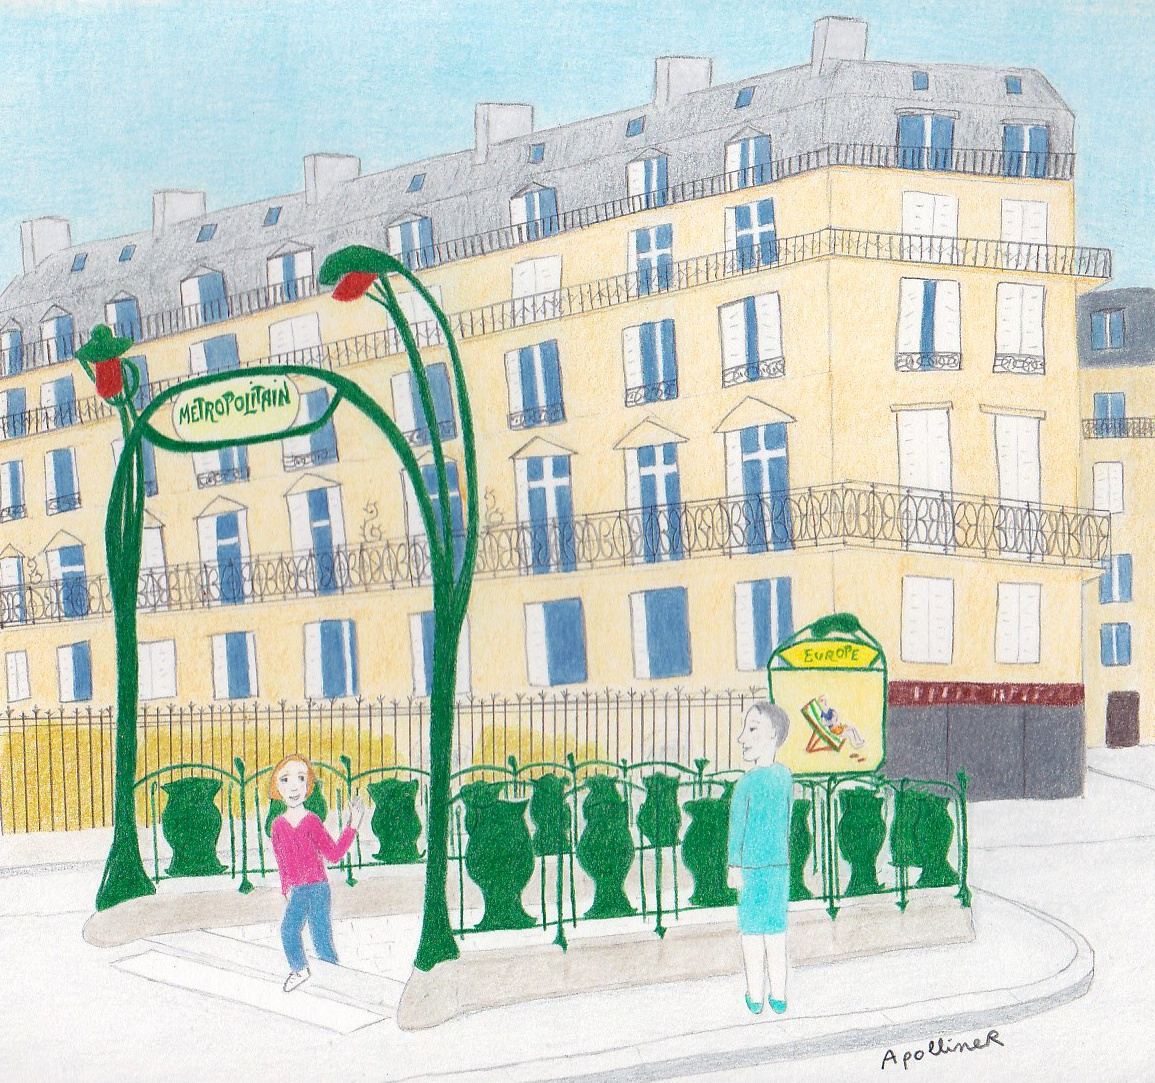 drawing of a guimard Metro entrance in Paris